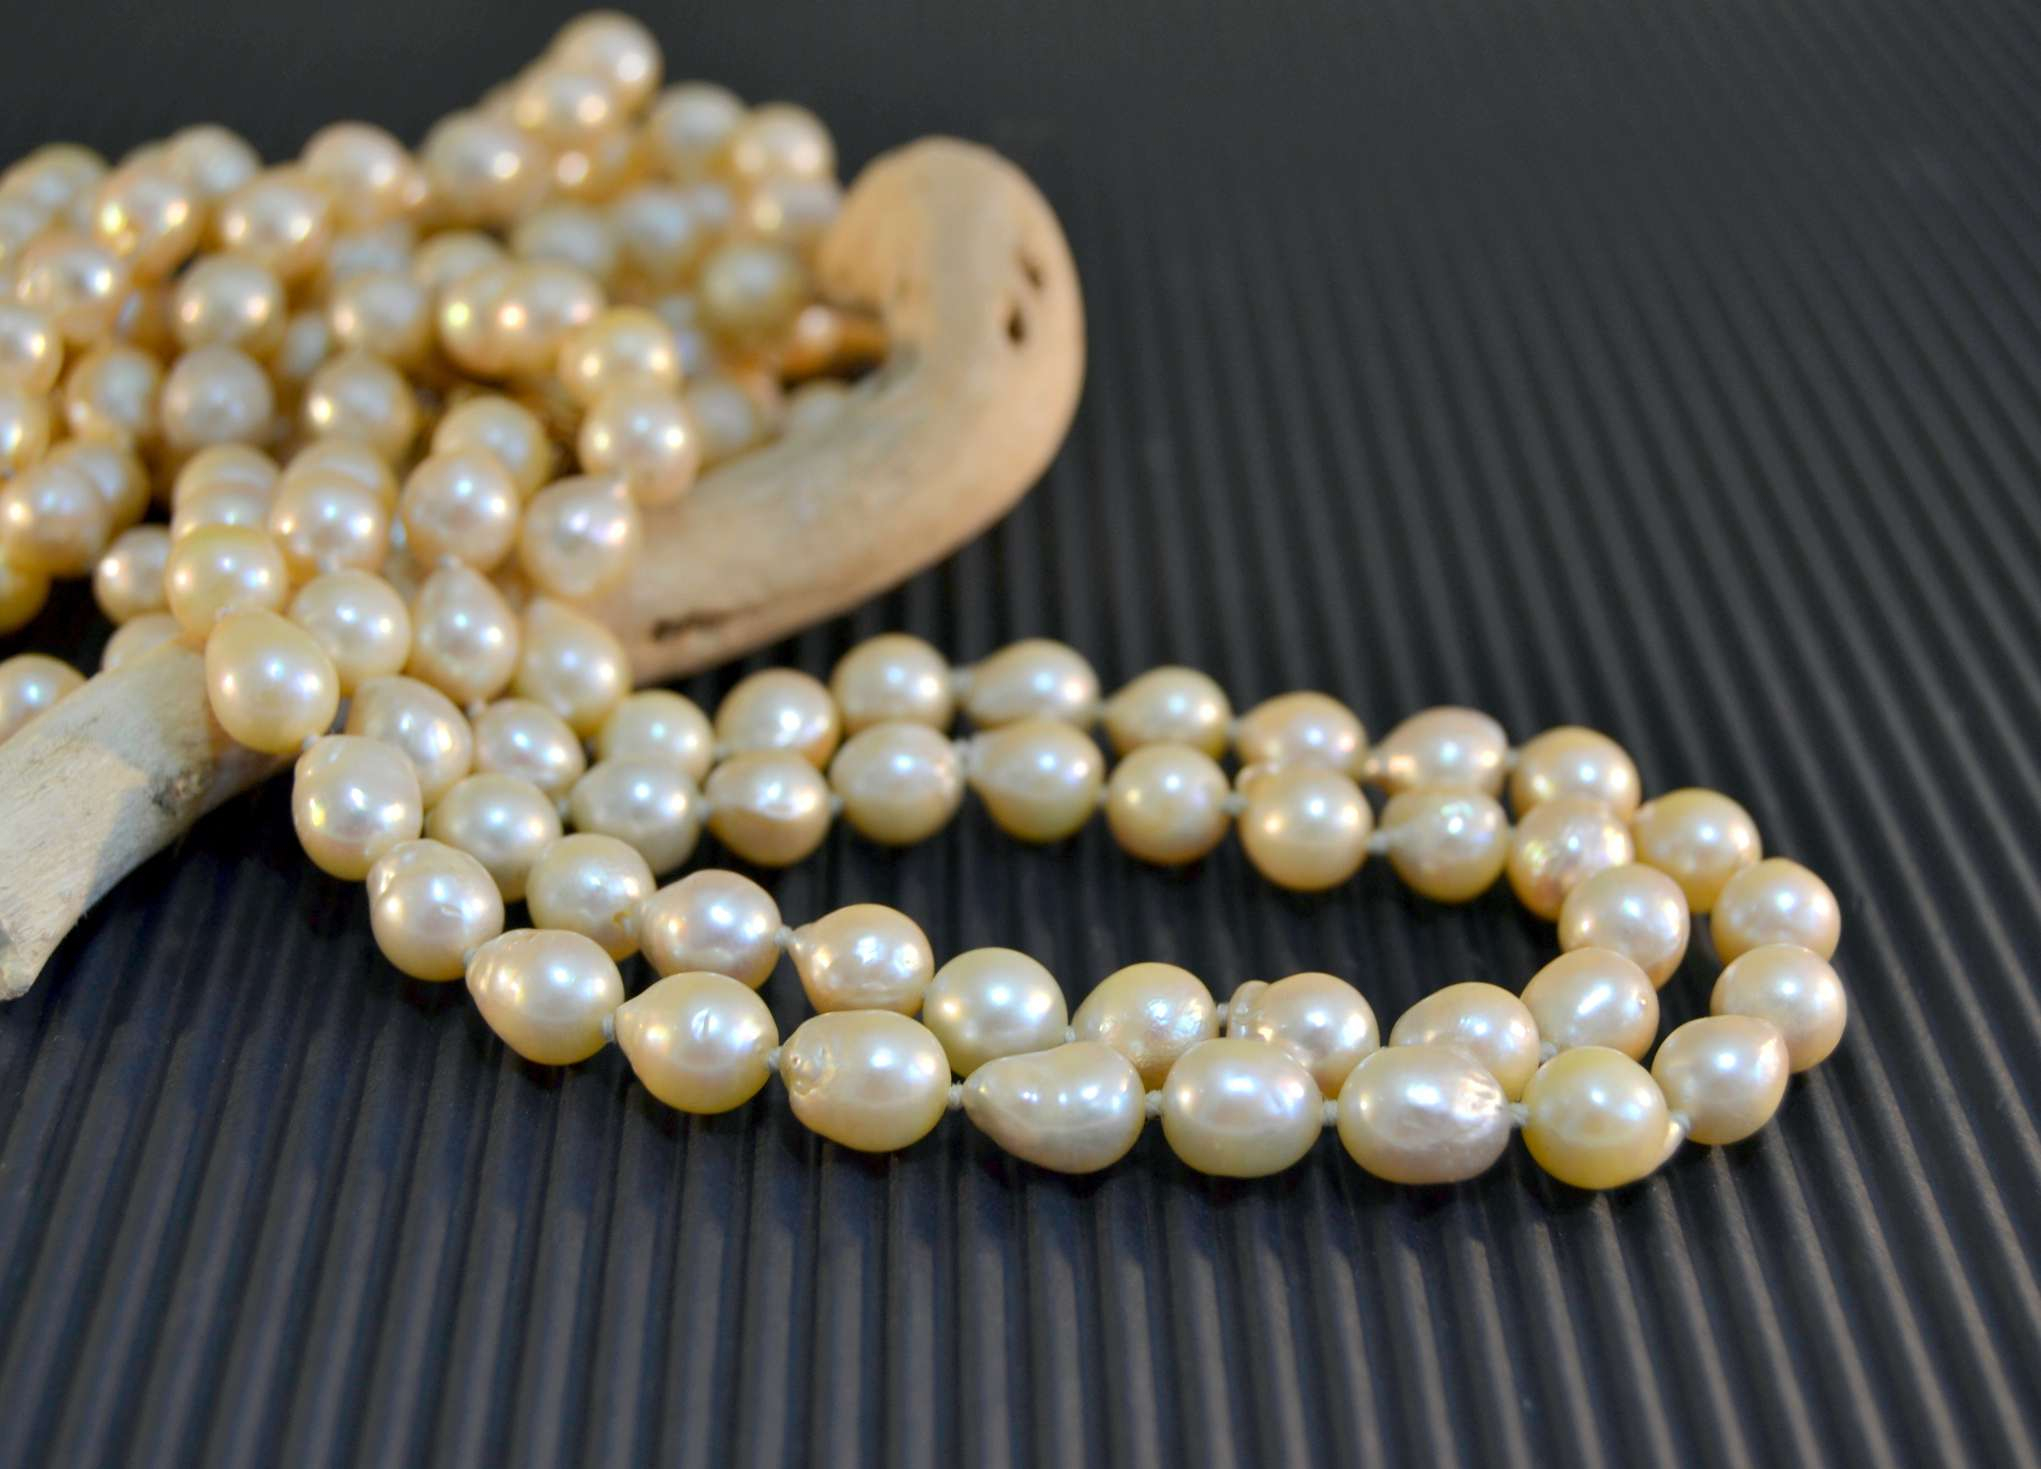 Identifying Pearls Used In Antique And Vintage Jewelry With Recent Freshwater Cultured Pearls & Beads Necklaces (View 17 of 25)